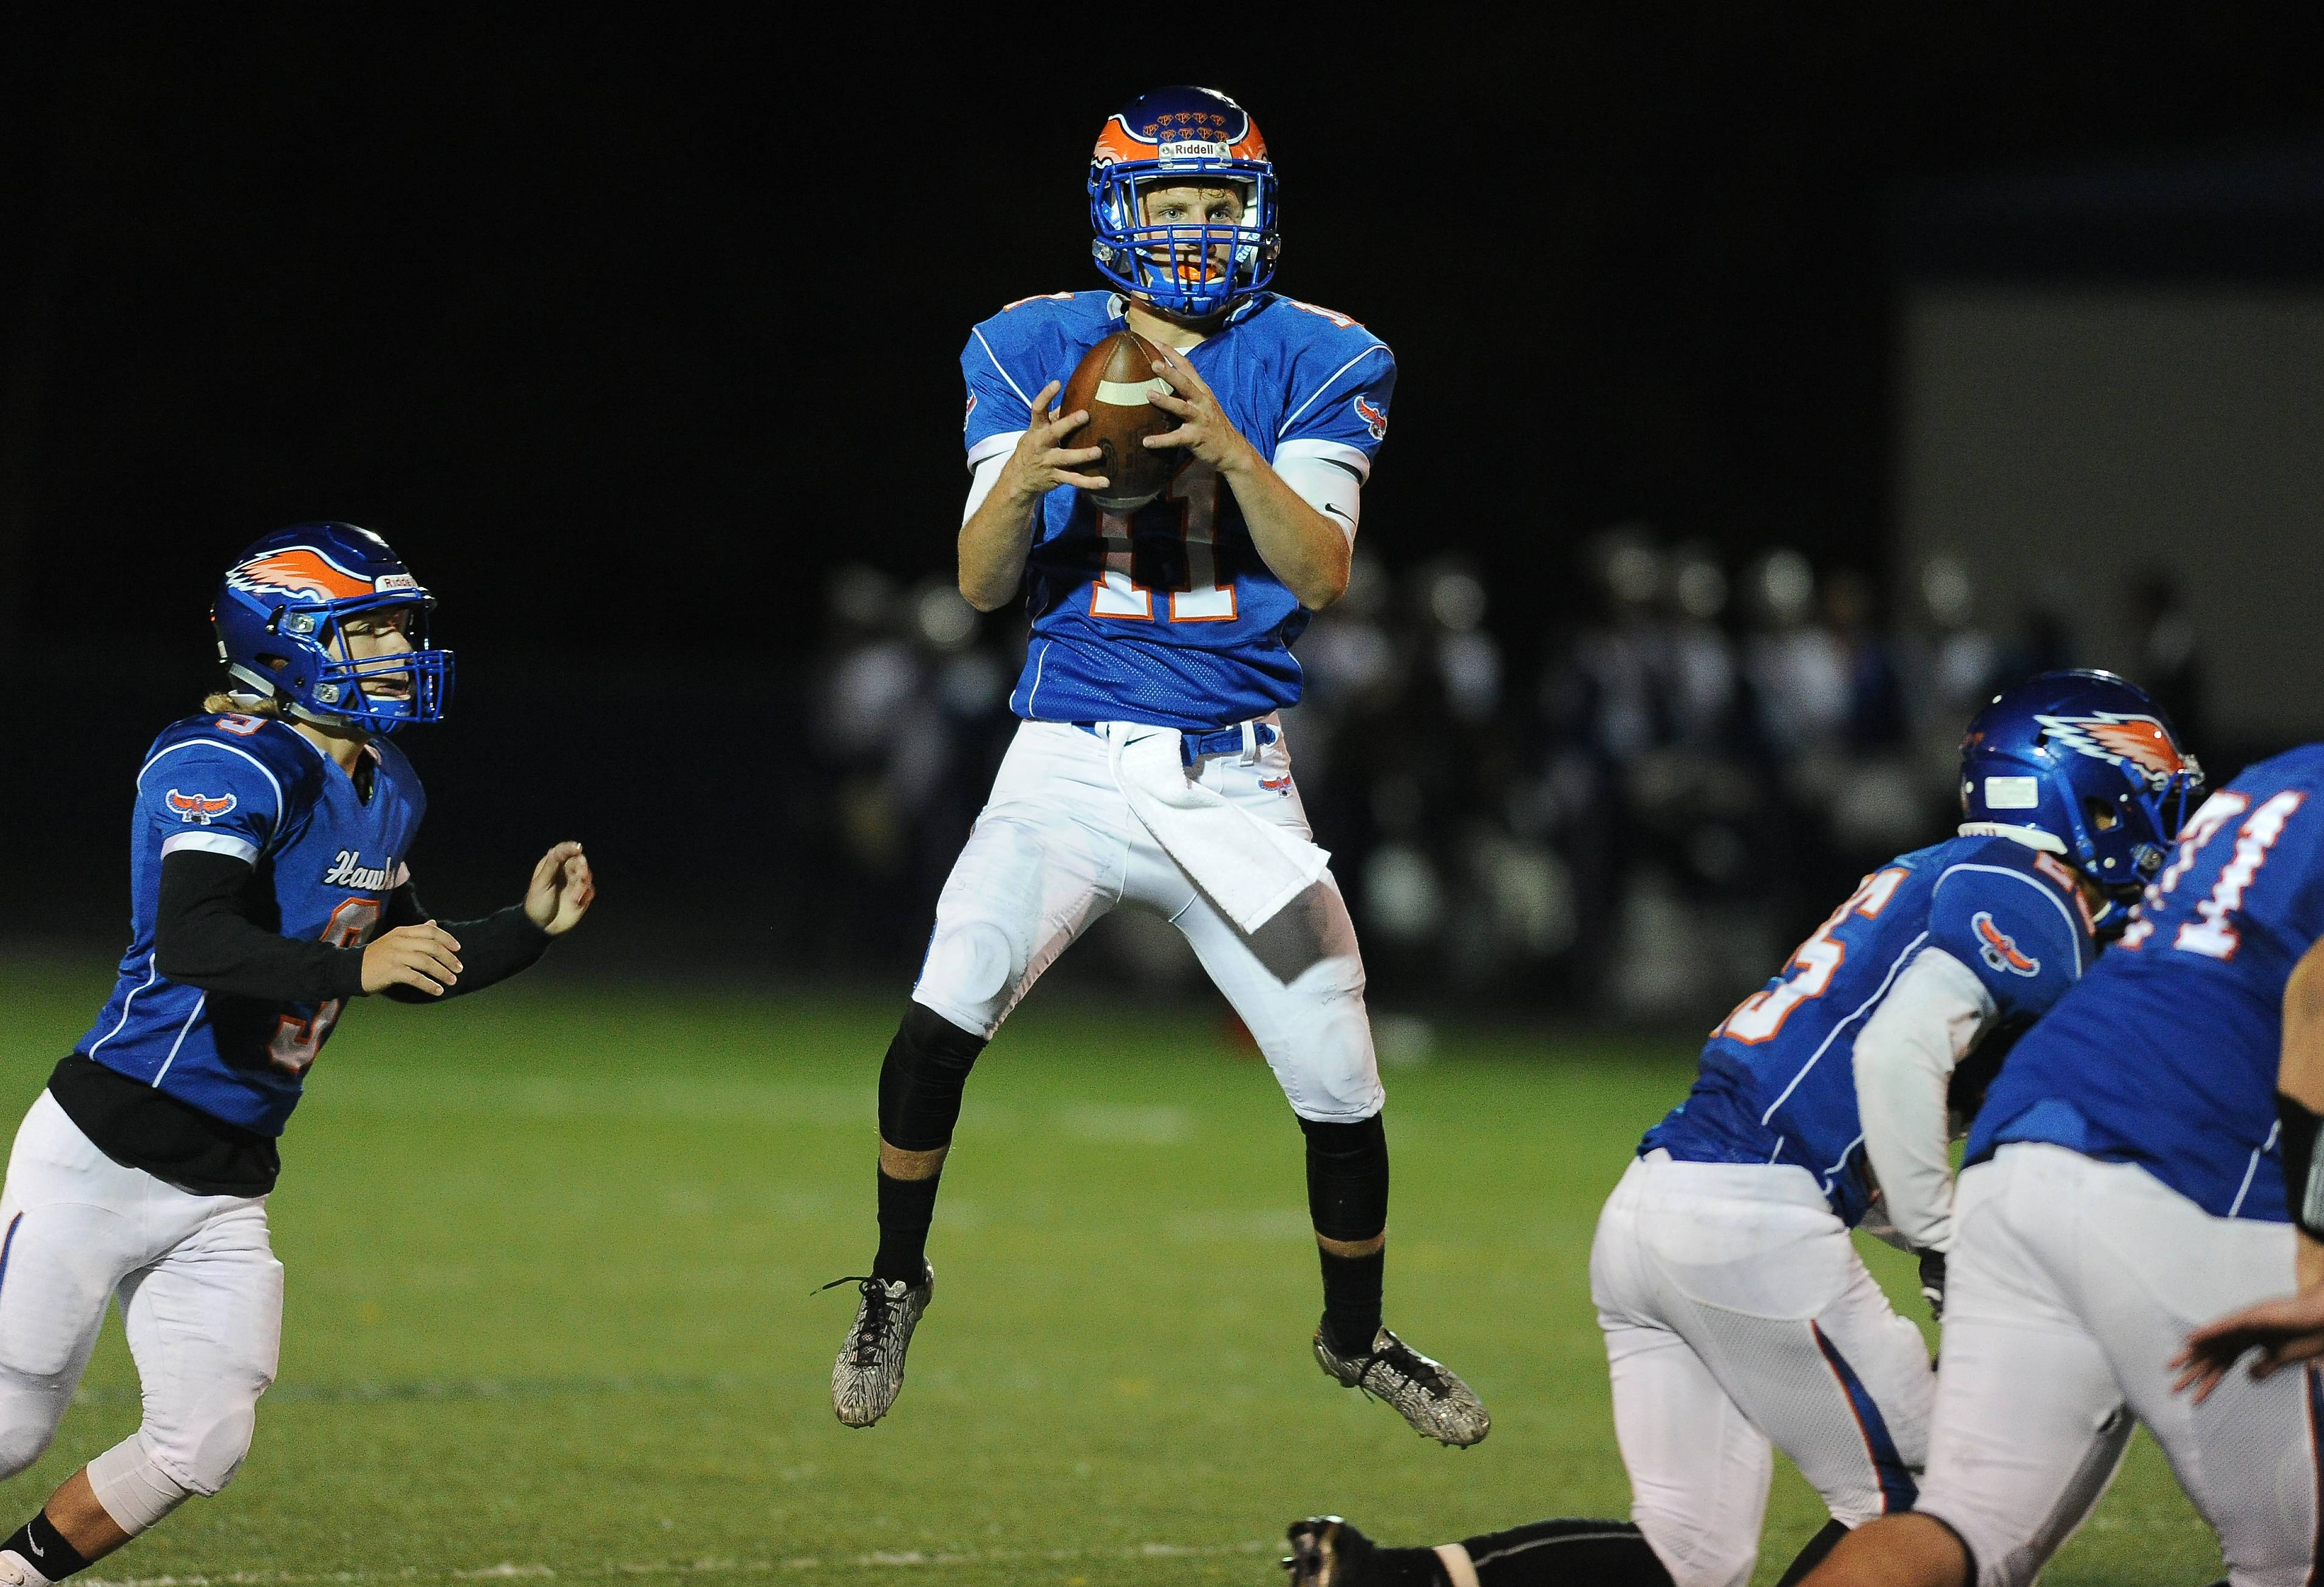 Hoffman Estates quarterback Austin Coalson delivers to a receiver in the first half against visiting Hersey on Friday.